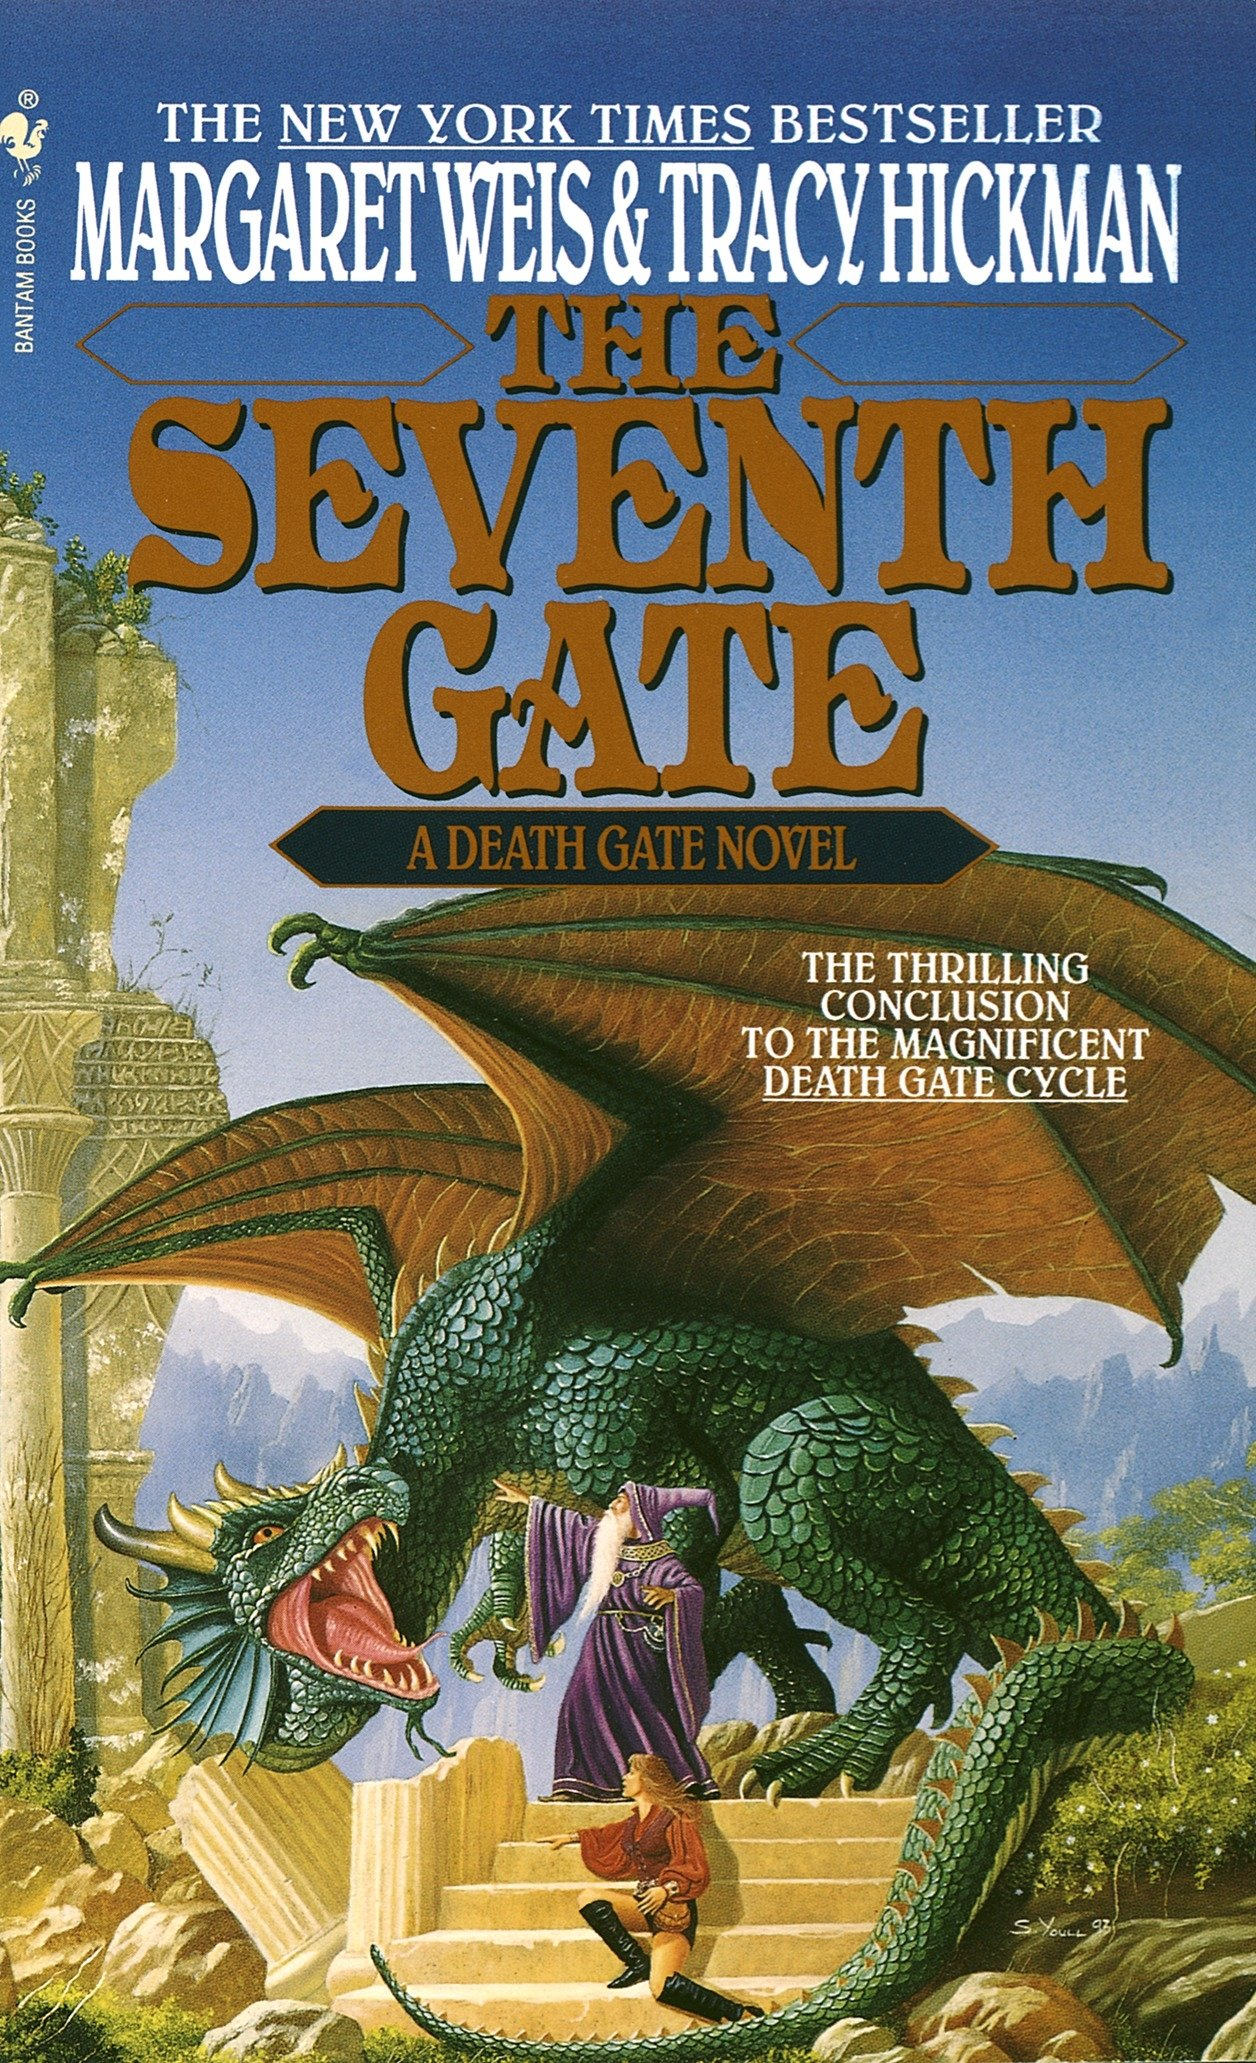 Read The Seventh Gate The Death Gate Cycle 7 By Margaret Weis